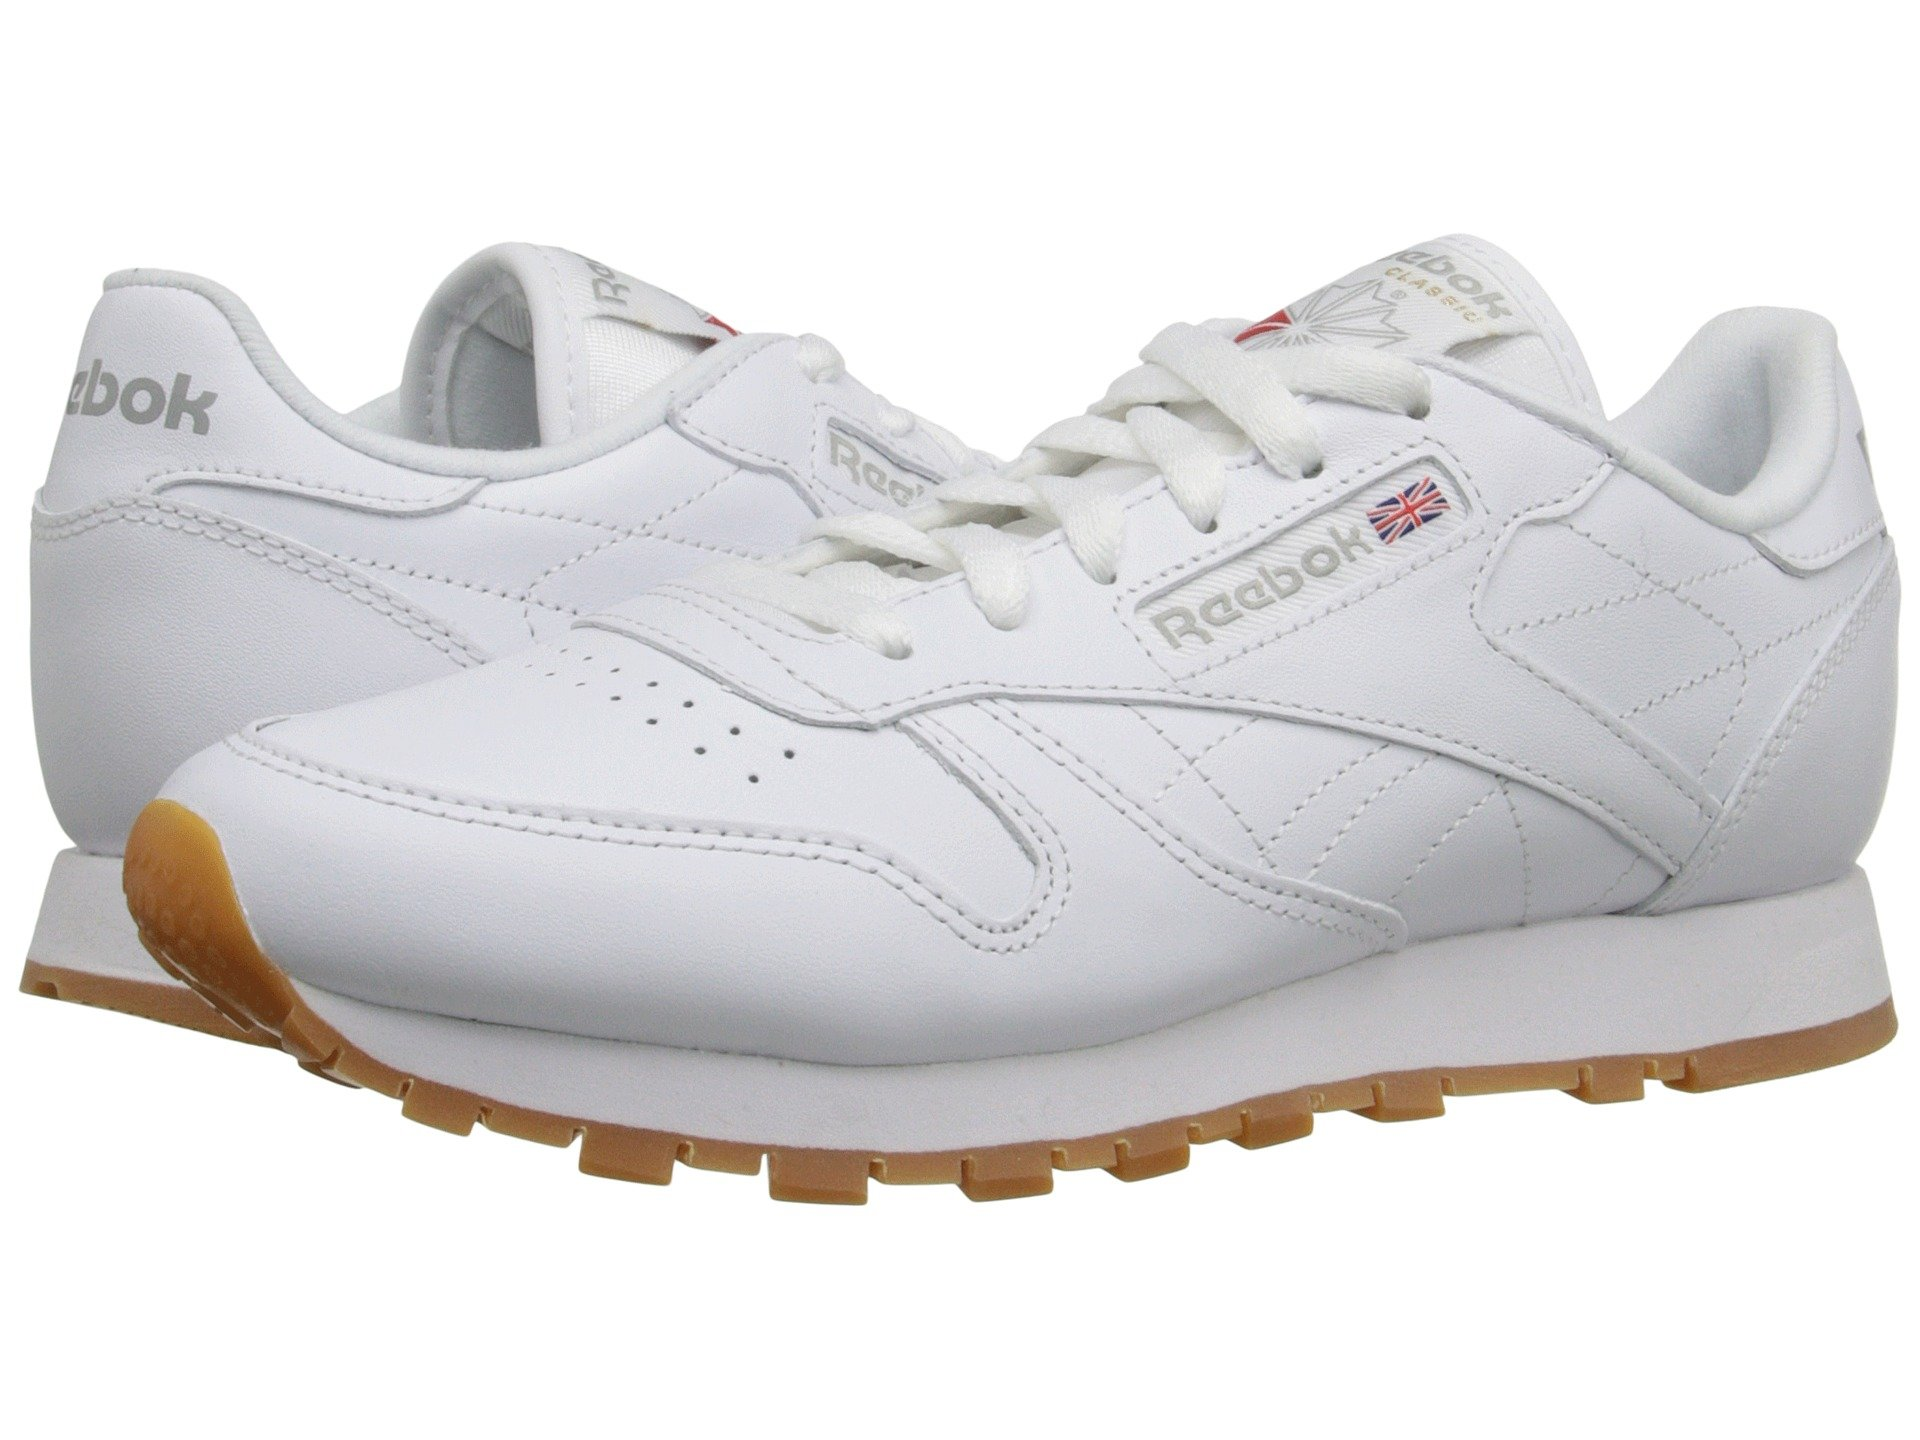 a7a4abbe305b White Gum. 812. Reebok Lifestyle. Classic Leather